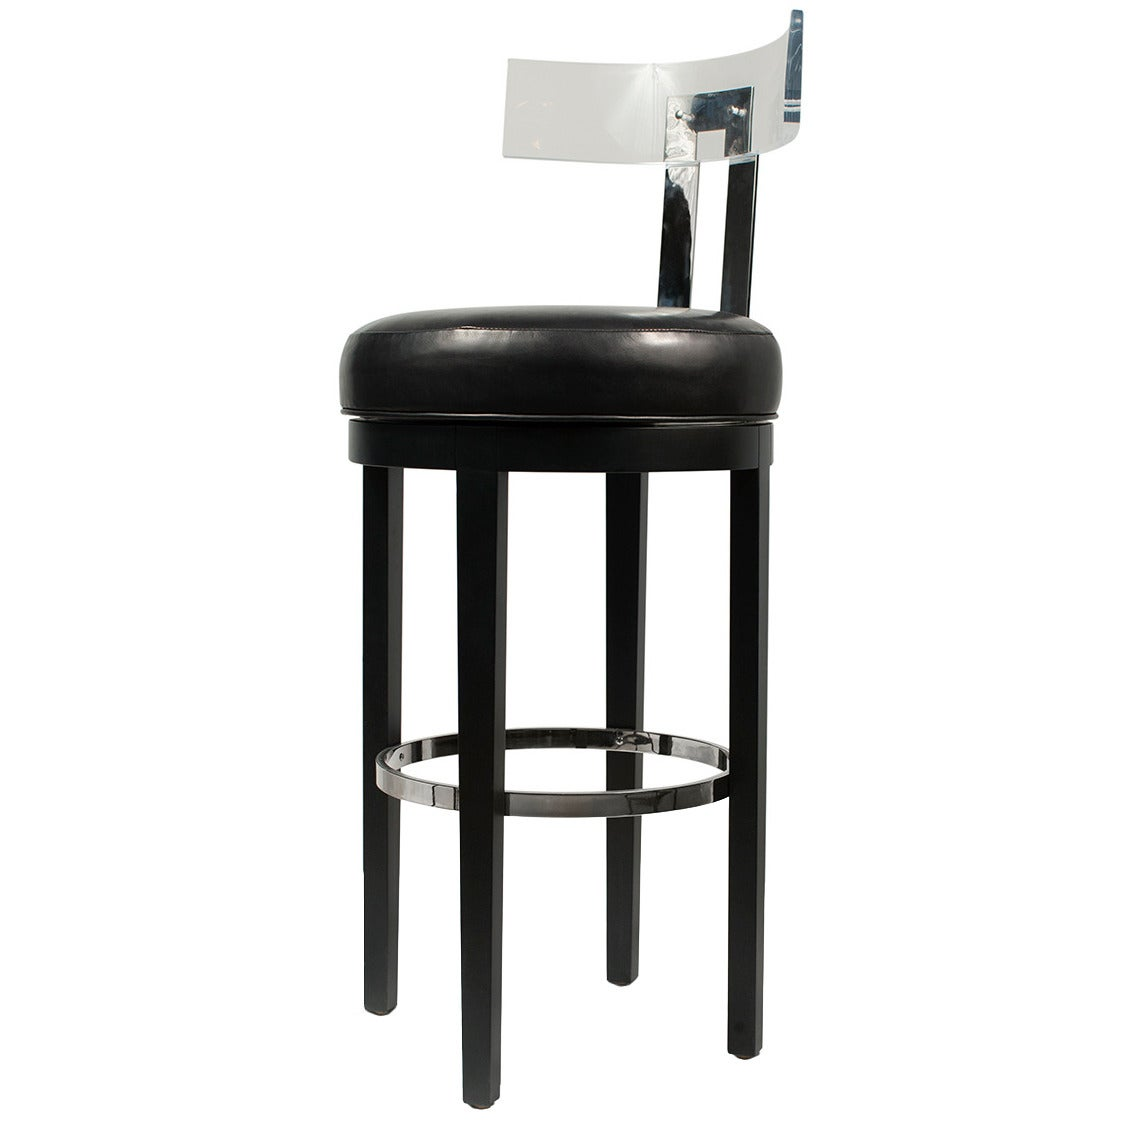 Superb img of Home > Furniture > Seating > Stools with #40515B color and 1122x1122 pixels